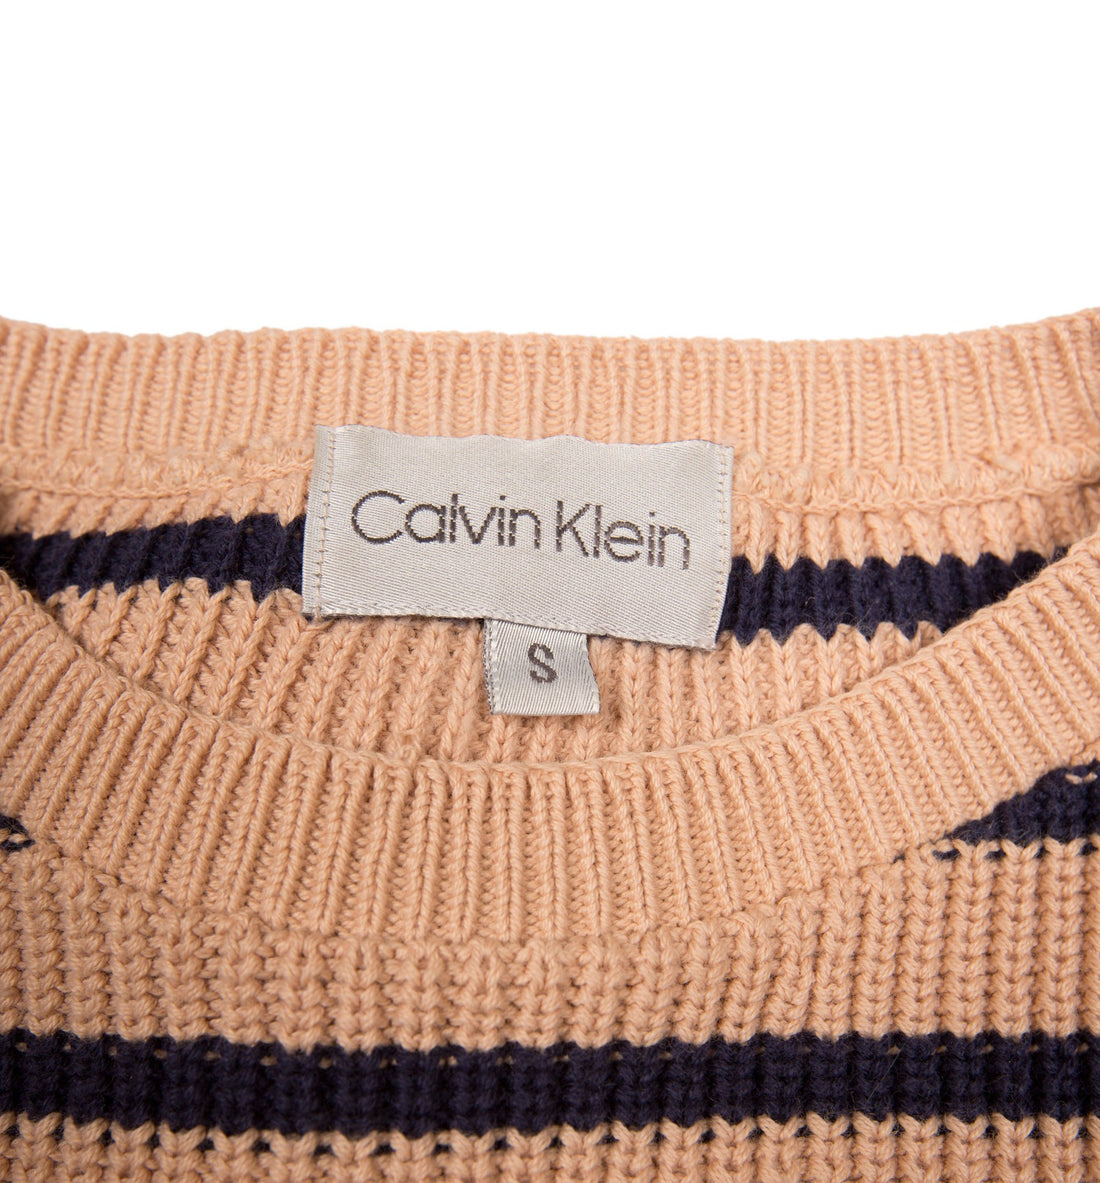 Vintage Calvin Klein Pull Over - Vintage: Men's: Apparel - Iron and Resin